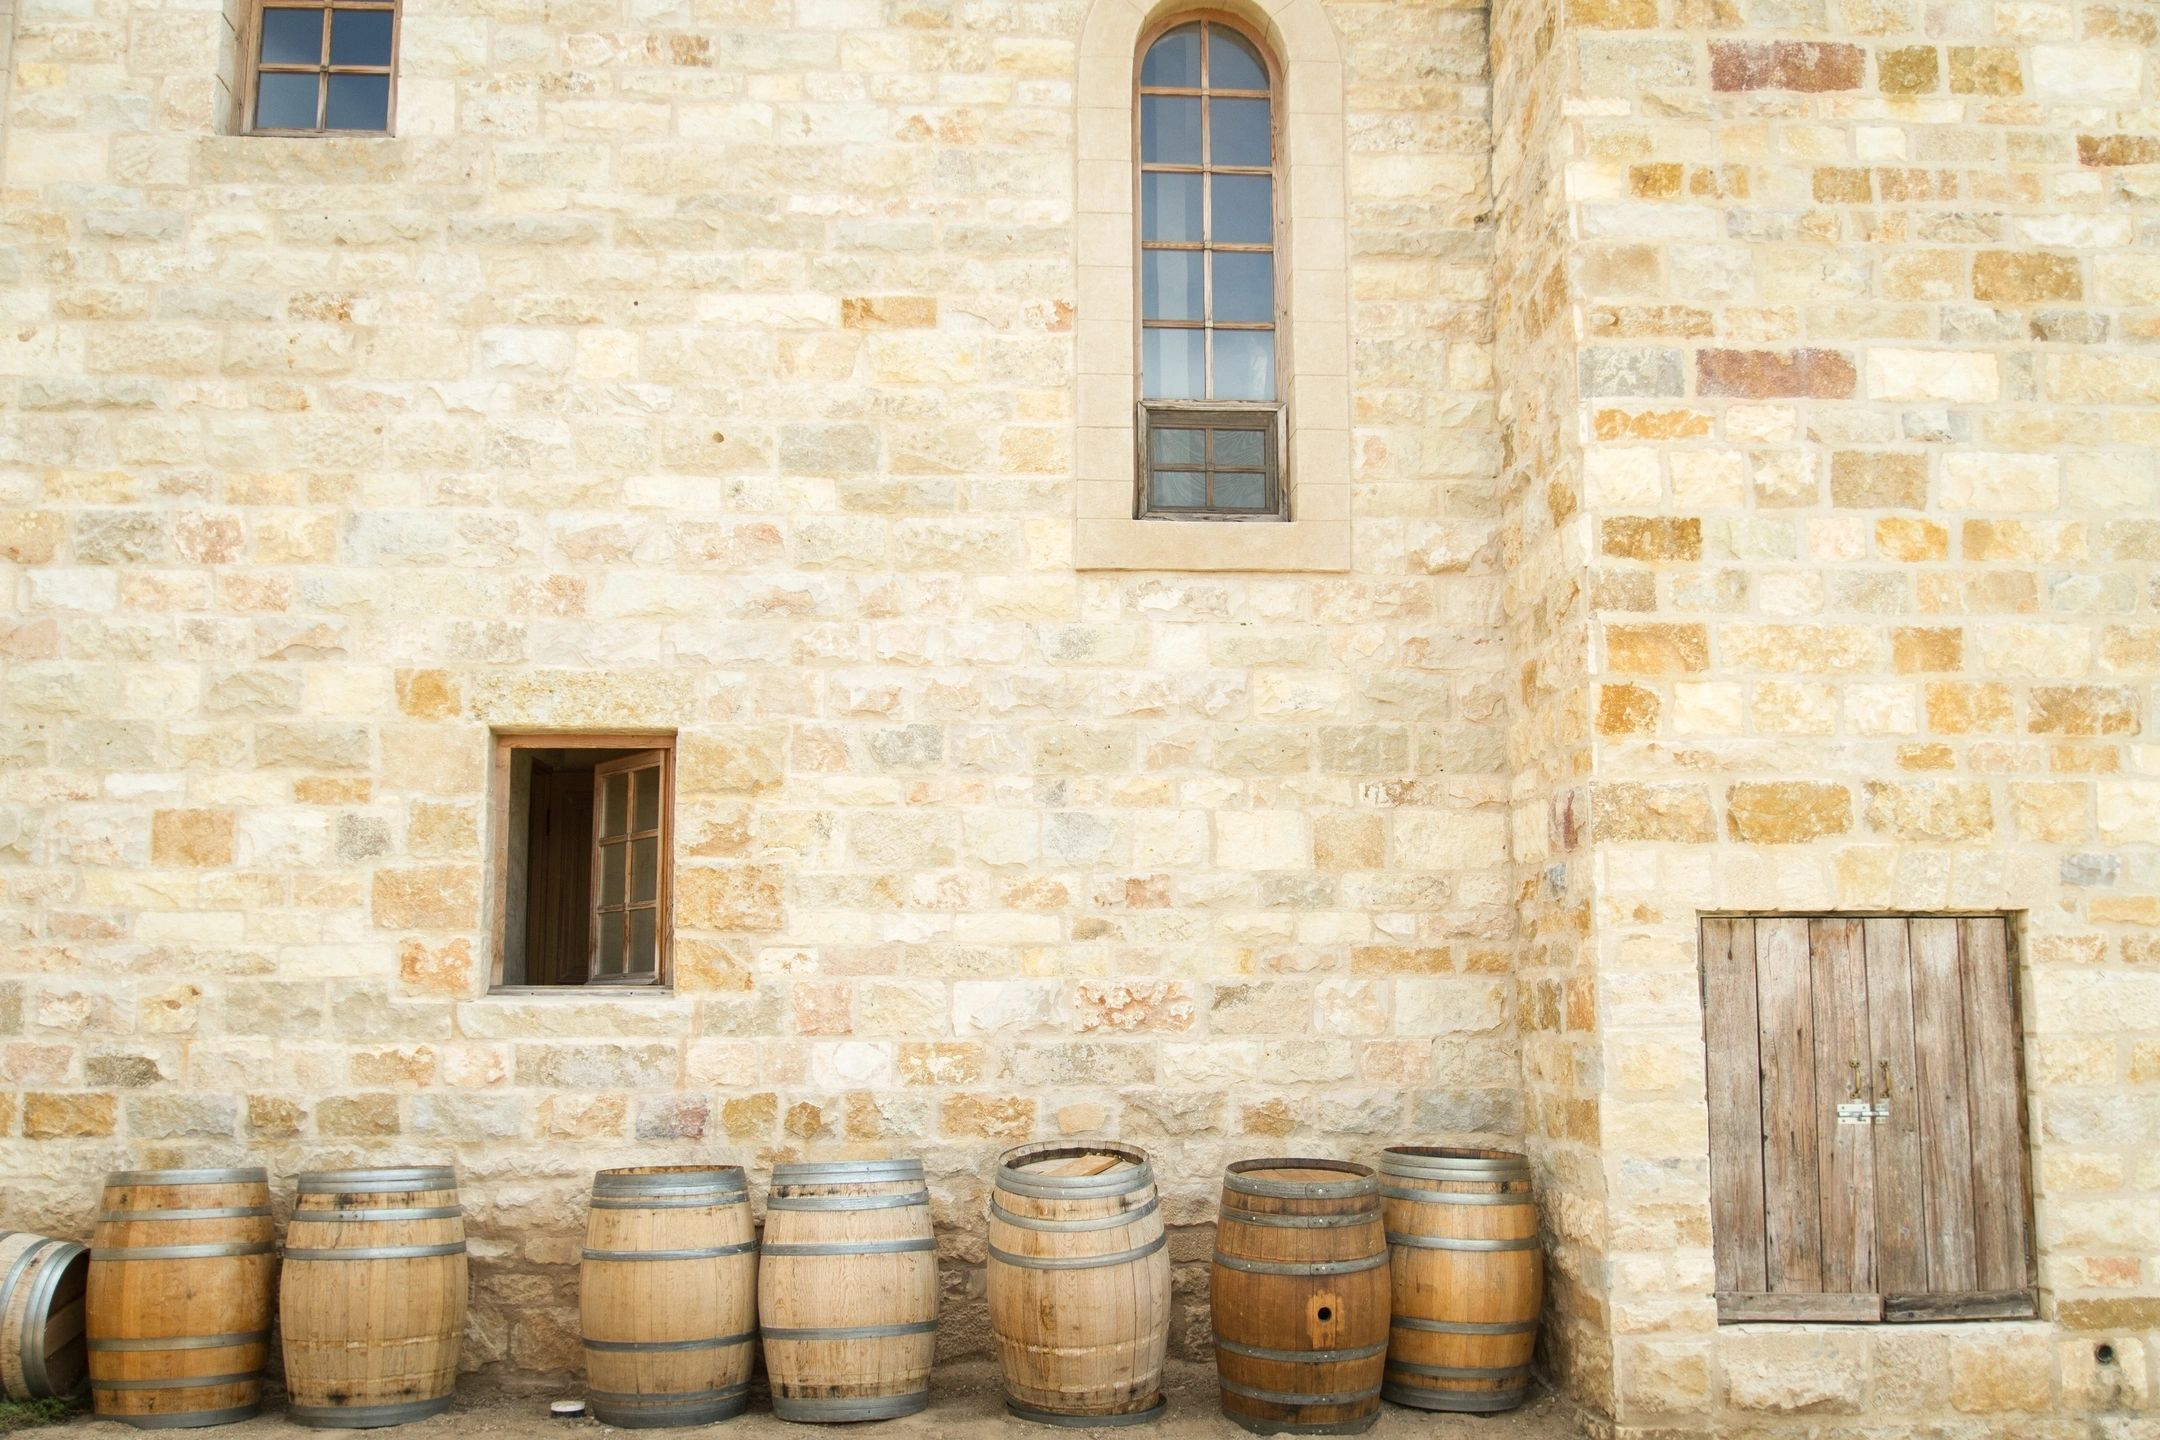 The best wine tastings in Tuscany: A visit Under the Tuscan Sun